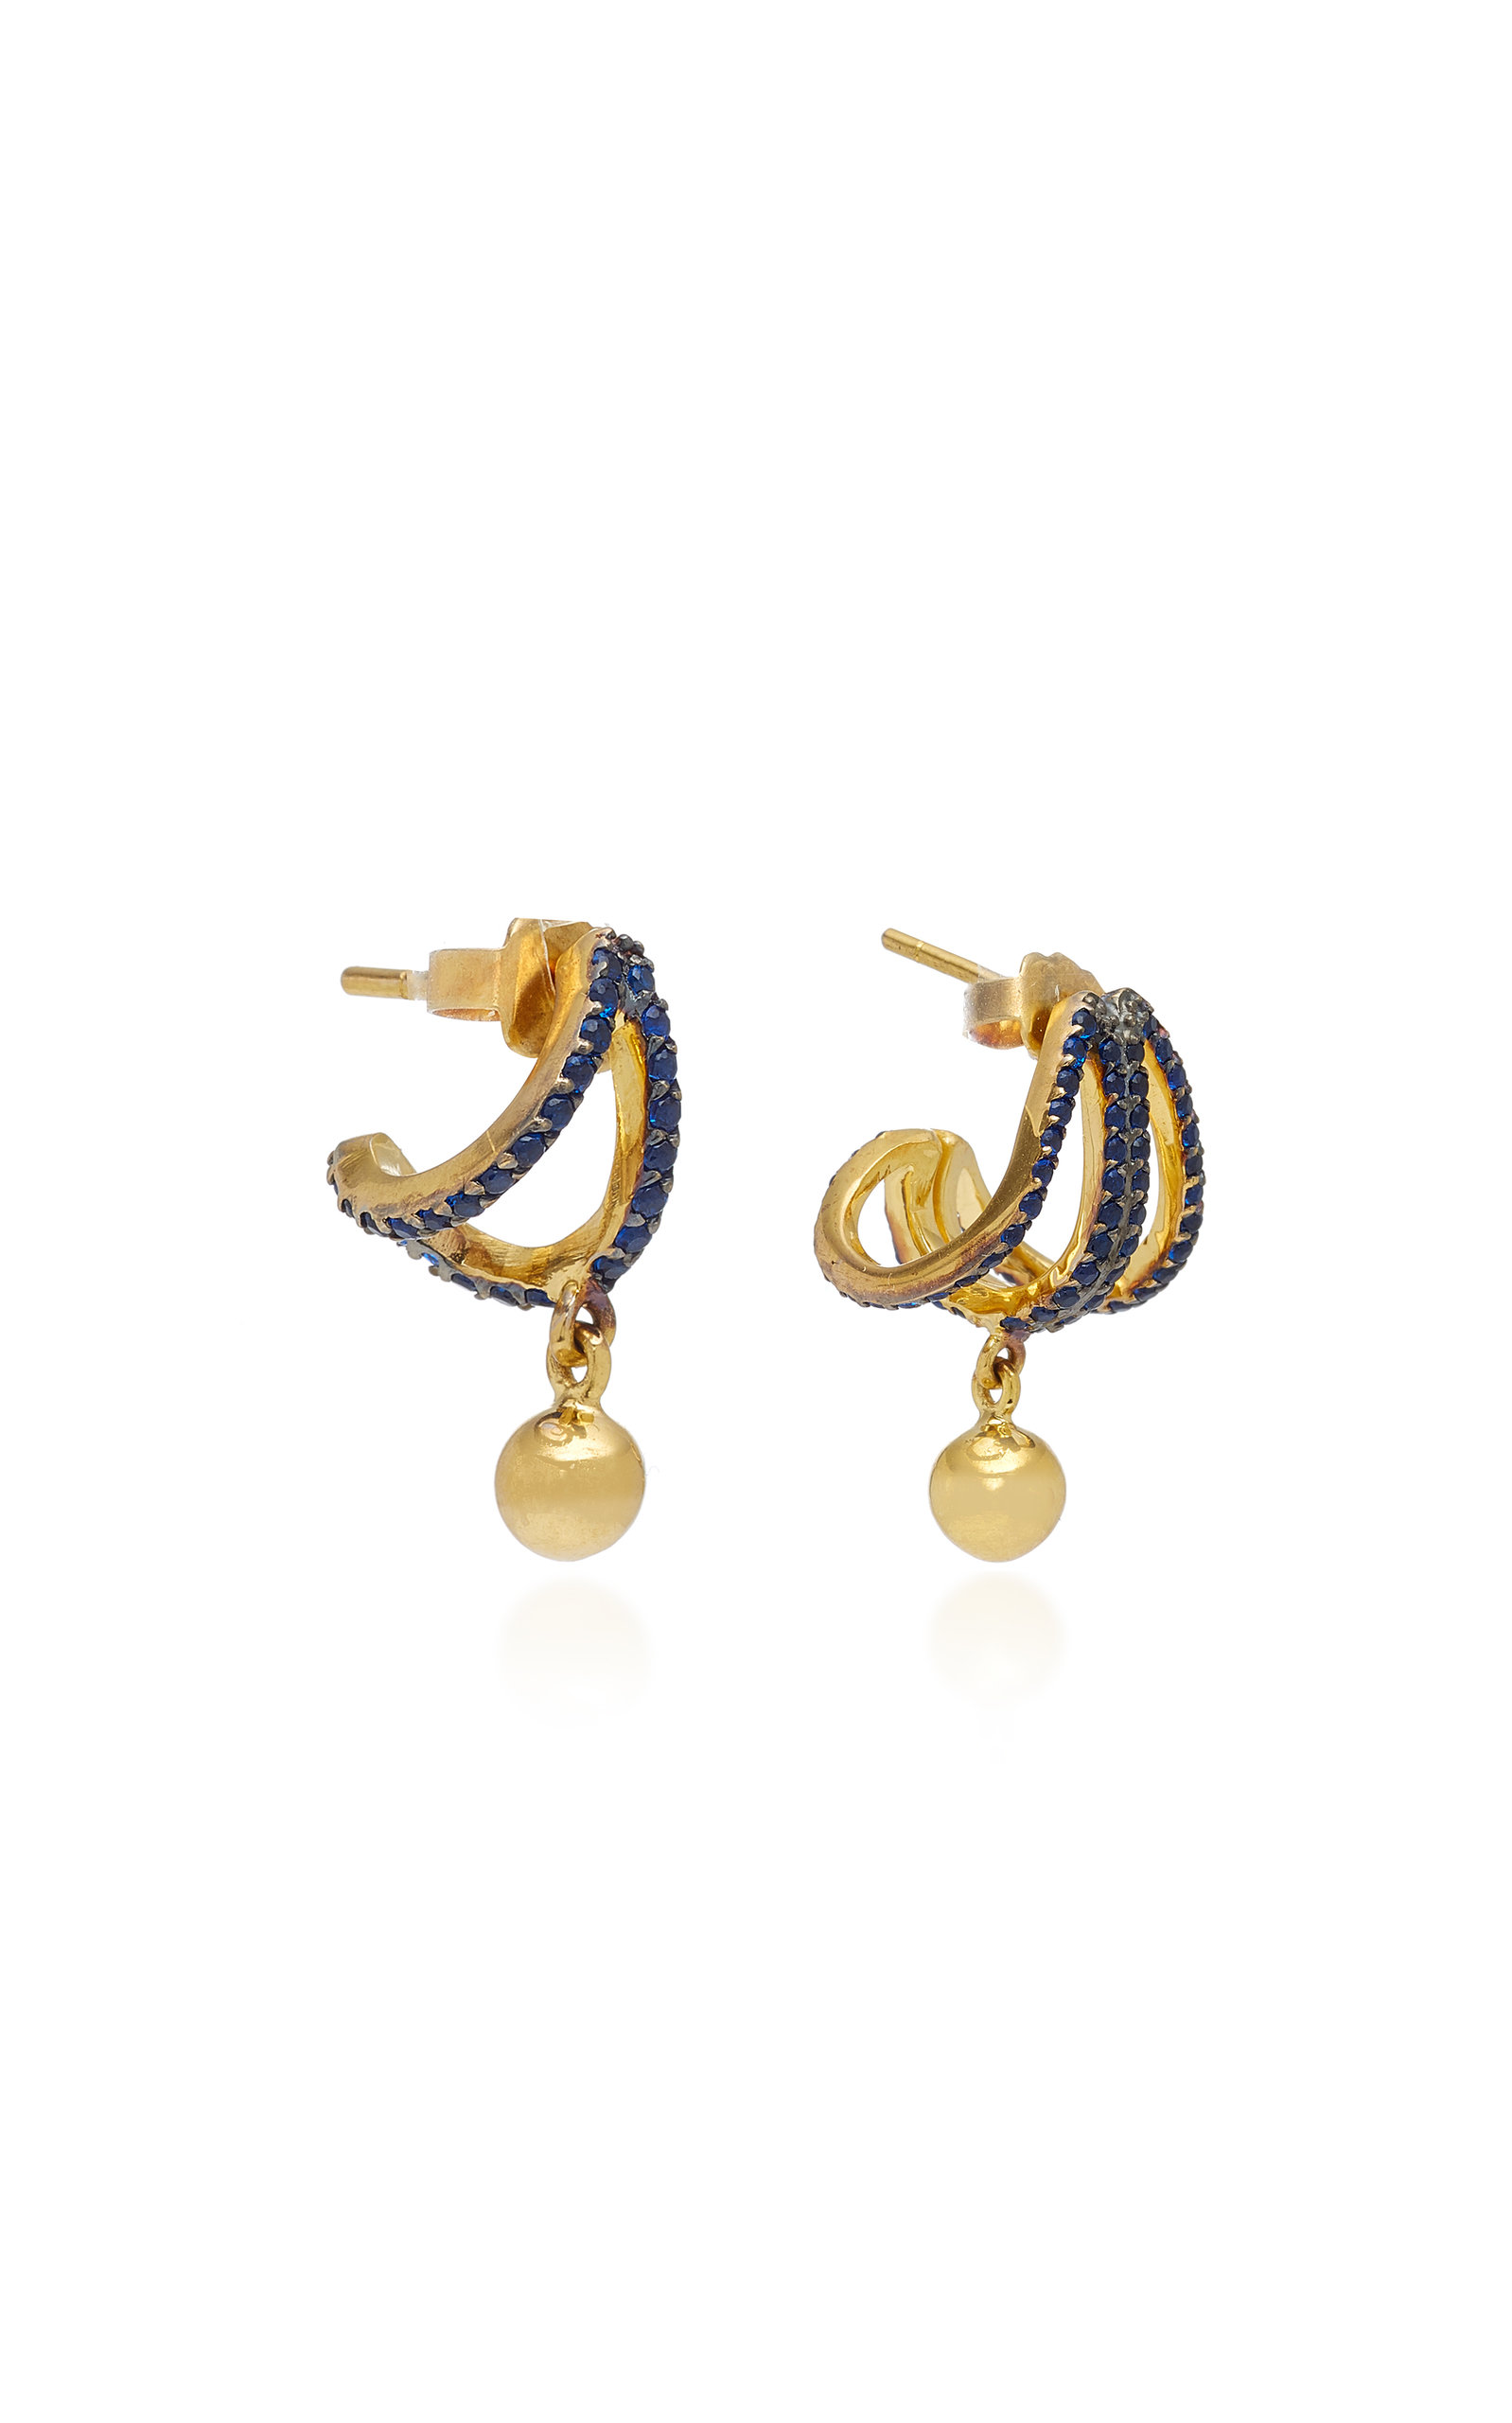 Set of Three Criss-Cross Gold-Plated Brass and Cubic Zirconia Earrings Joanna Laura Constantine QJENZC